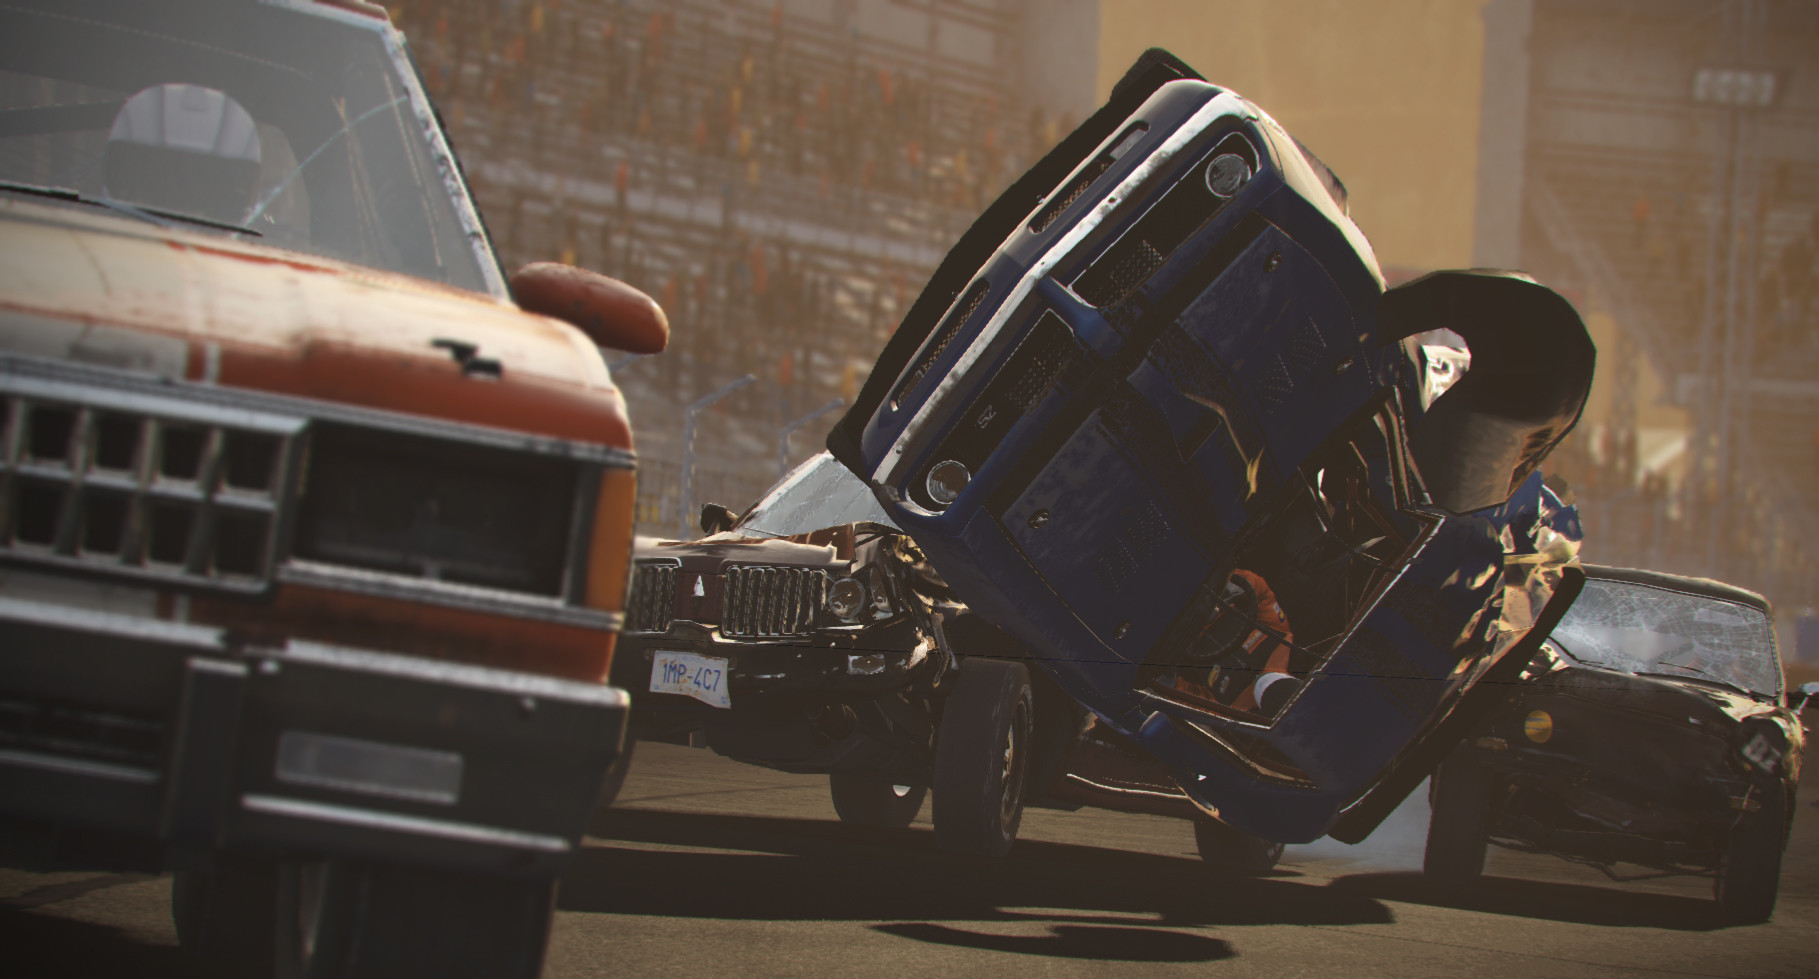 The Next Car Game is Wreckfest by FlatOut developer